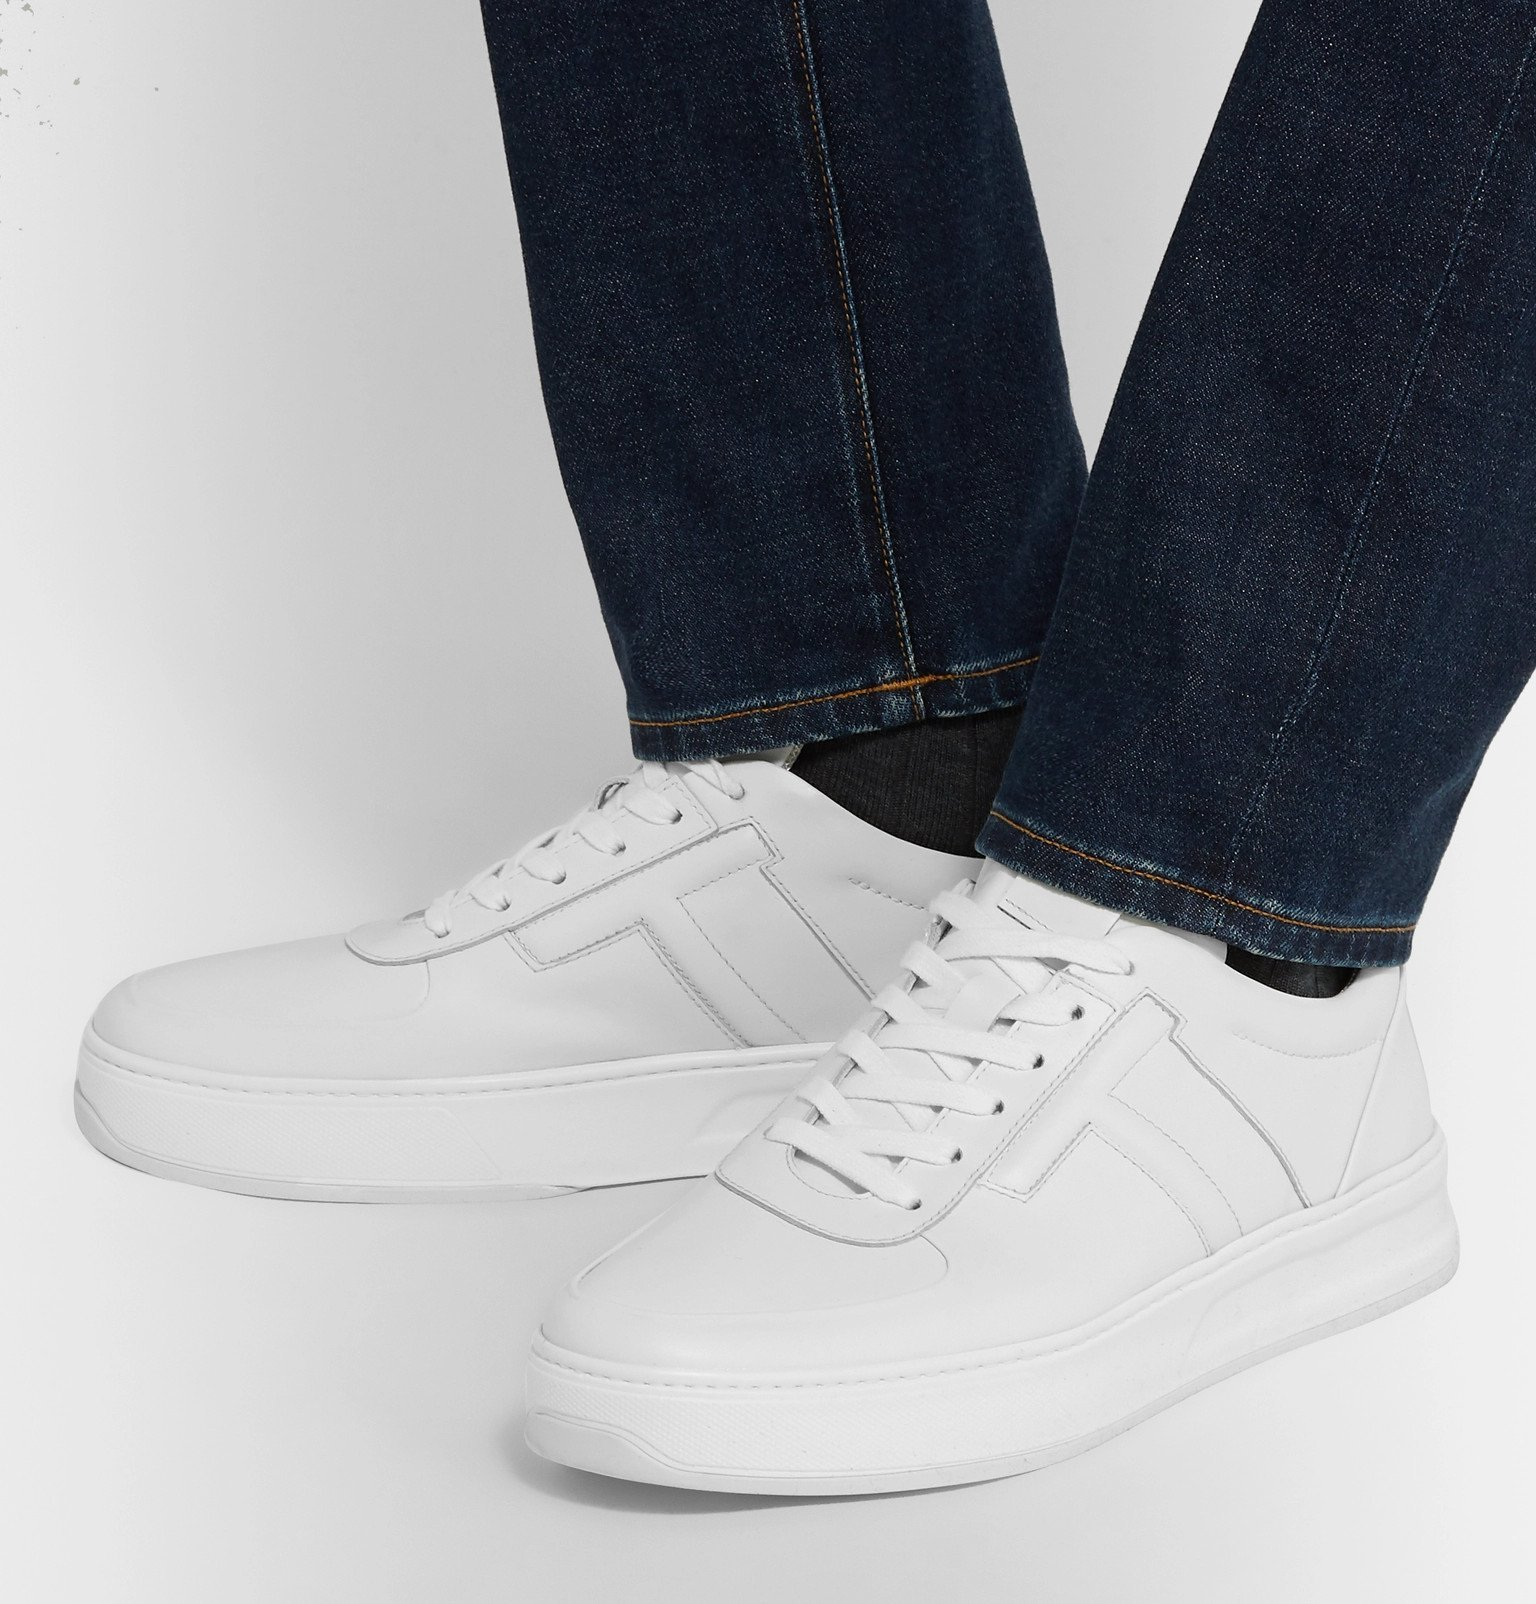 Tod's - Cassetta Leather Sneakers - White